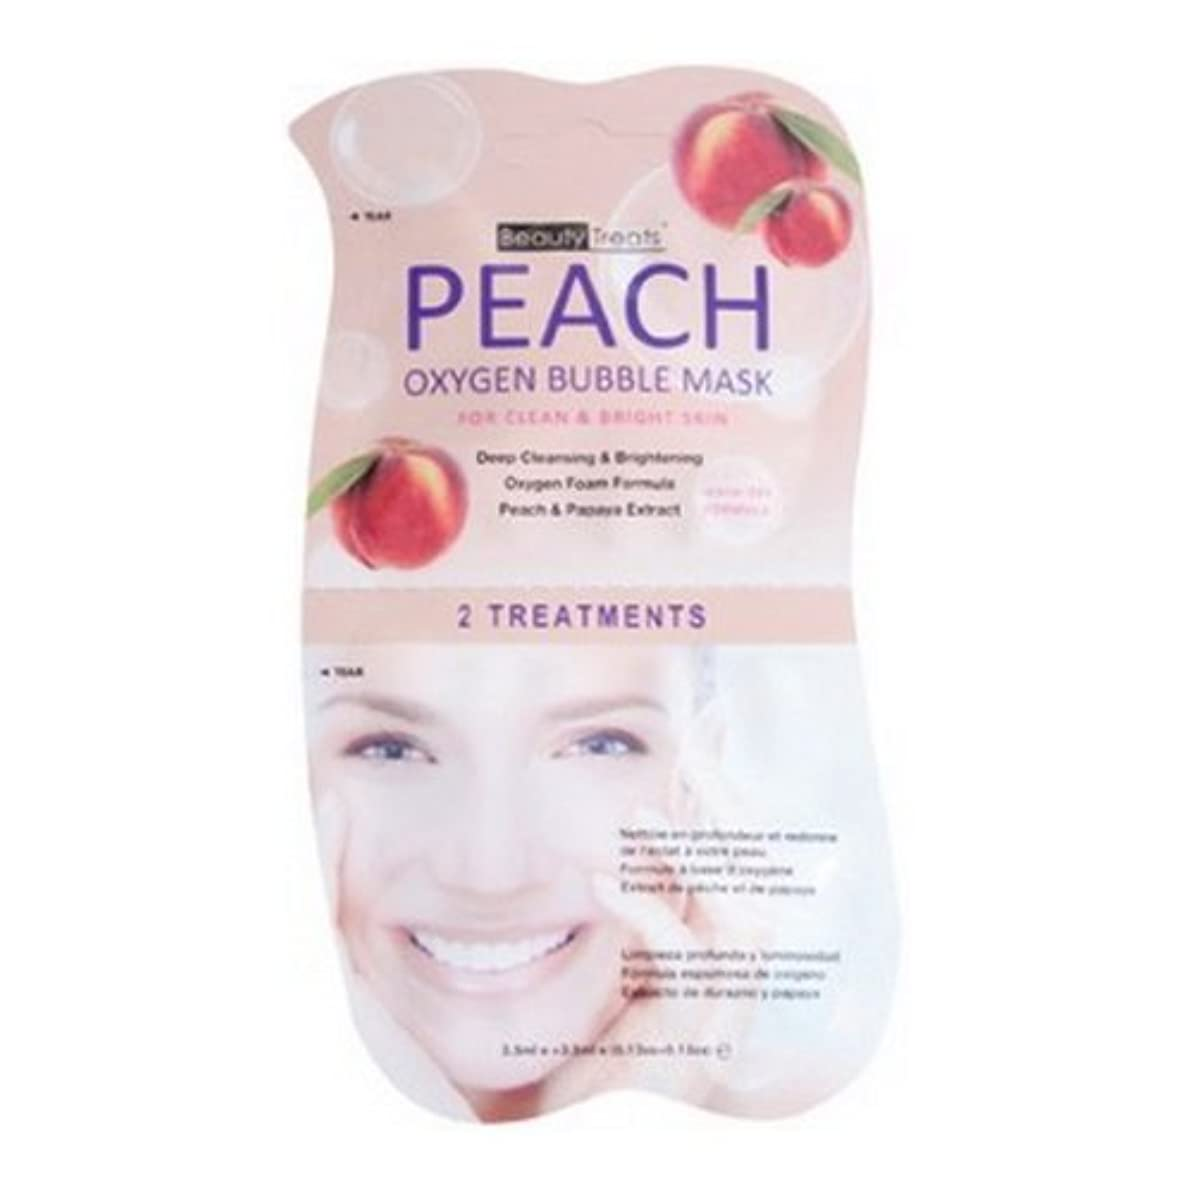 ハンサムまでしばしば(6 Pack) BEAUTY TREATS Peach Oxygen Bubble Mask - Peach (並行輸入品)